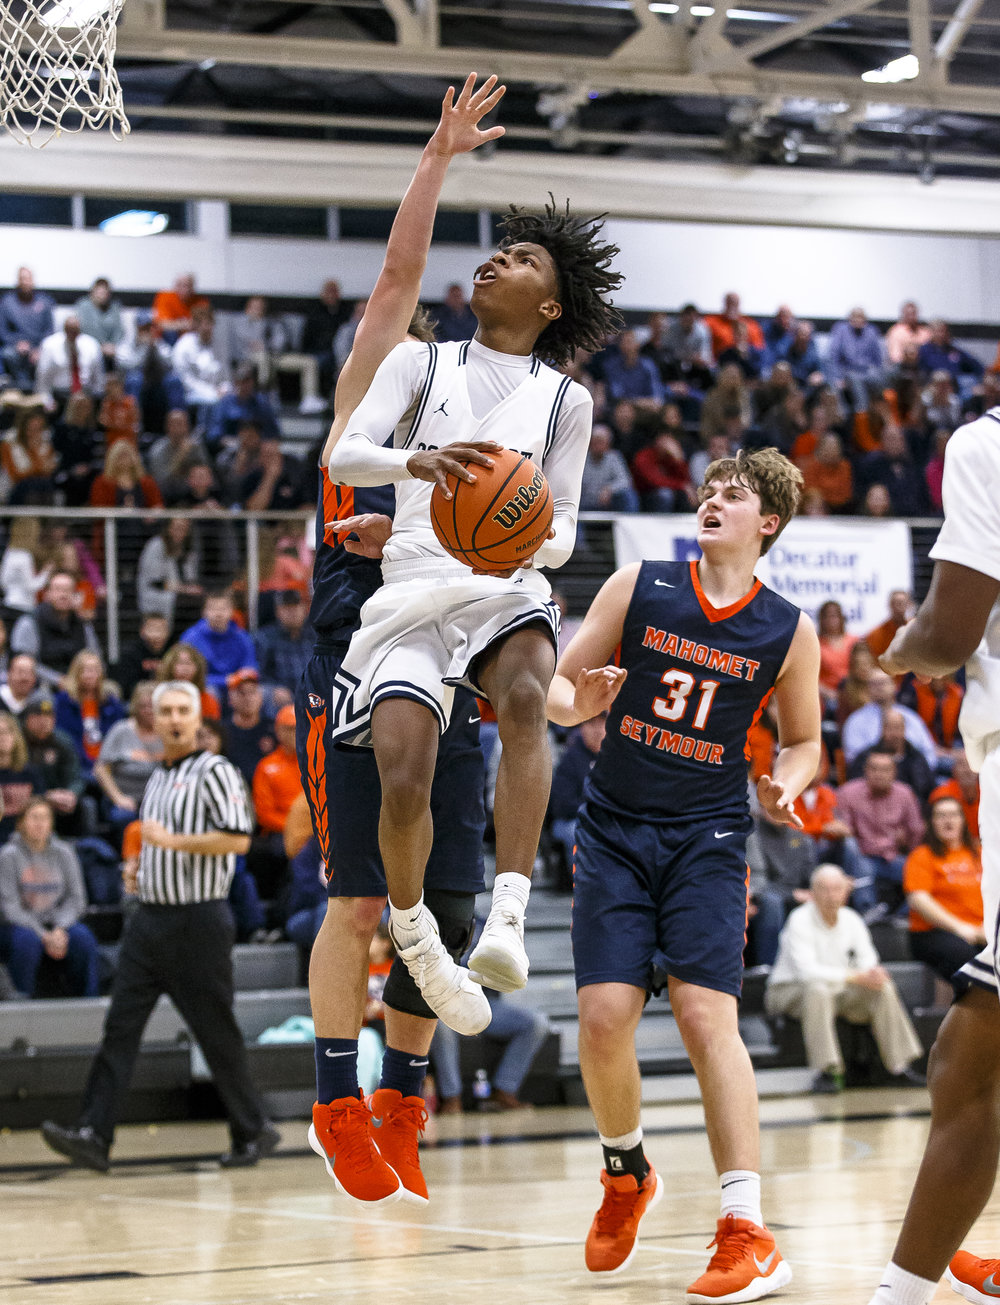 Southeast's Terrion Murdix (4) goes up to the basket against Mahomet-Seymour's Brooks Coetzee (23) in the second half during the Class 3A Decatur Eisenhower Sectional semifinals at Eisenhower High School, Wednesday, March 7, 2018, in Decatur, Ill. [Justin L. Fowler/The State Journal-Register]